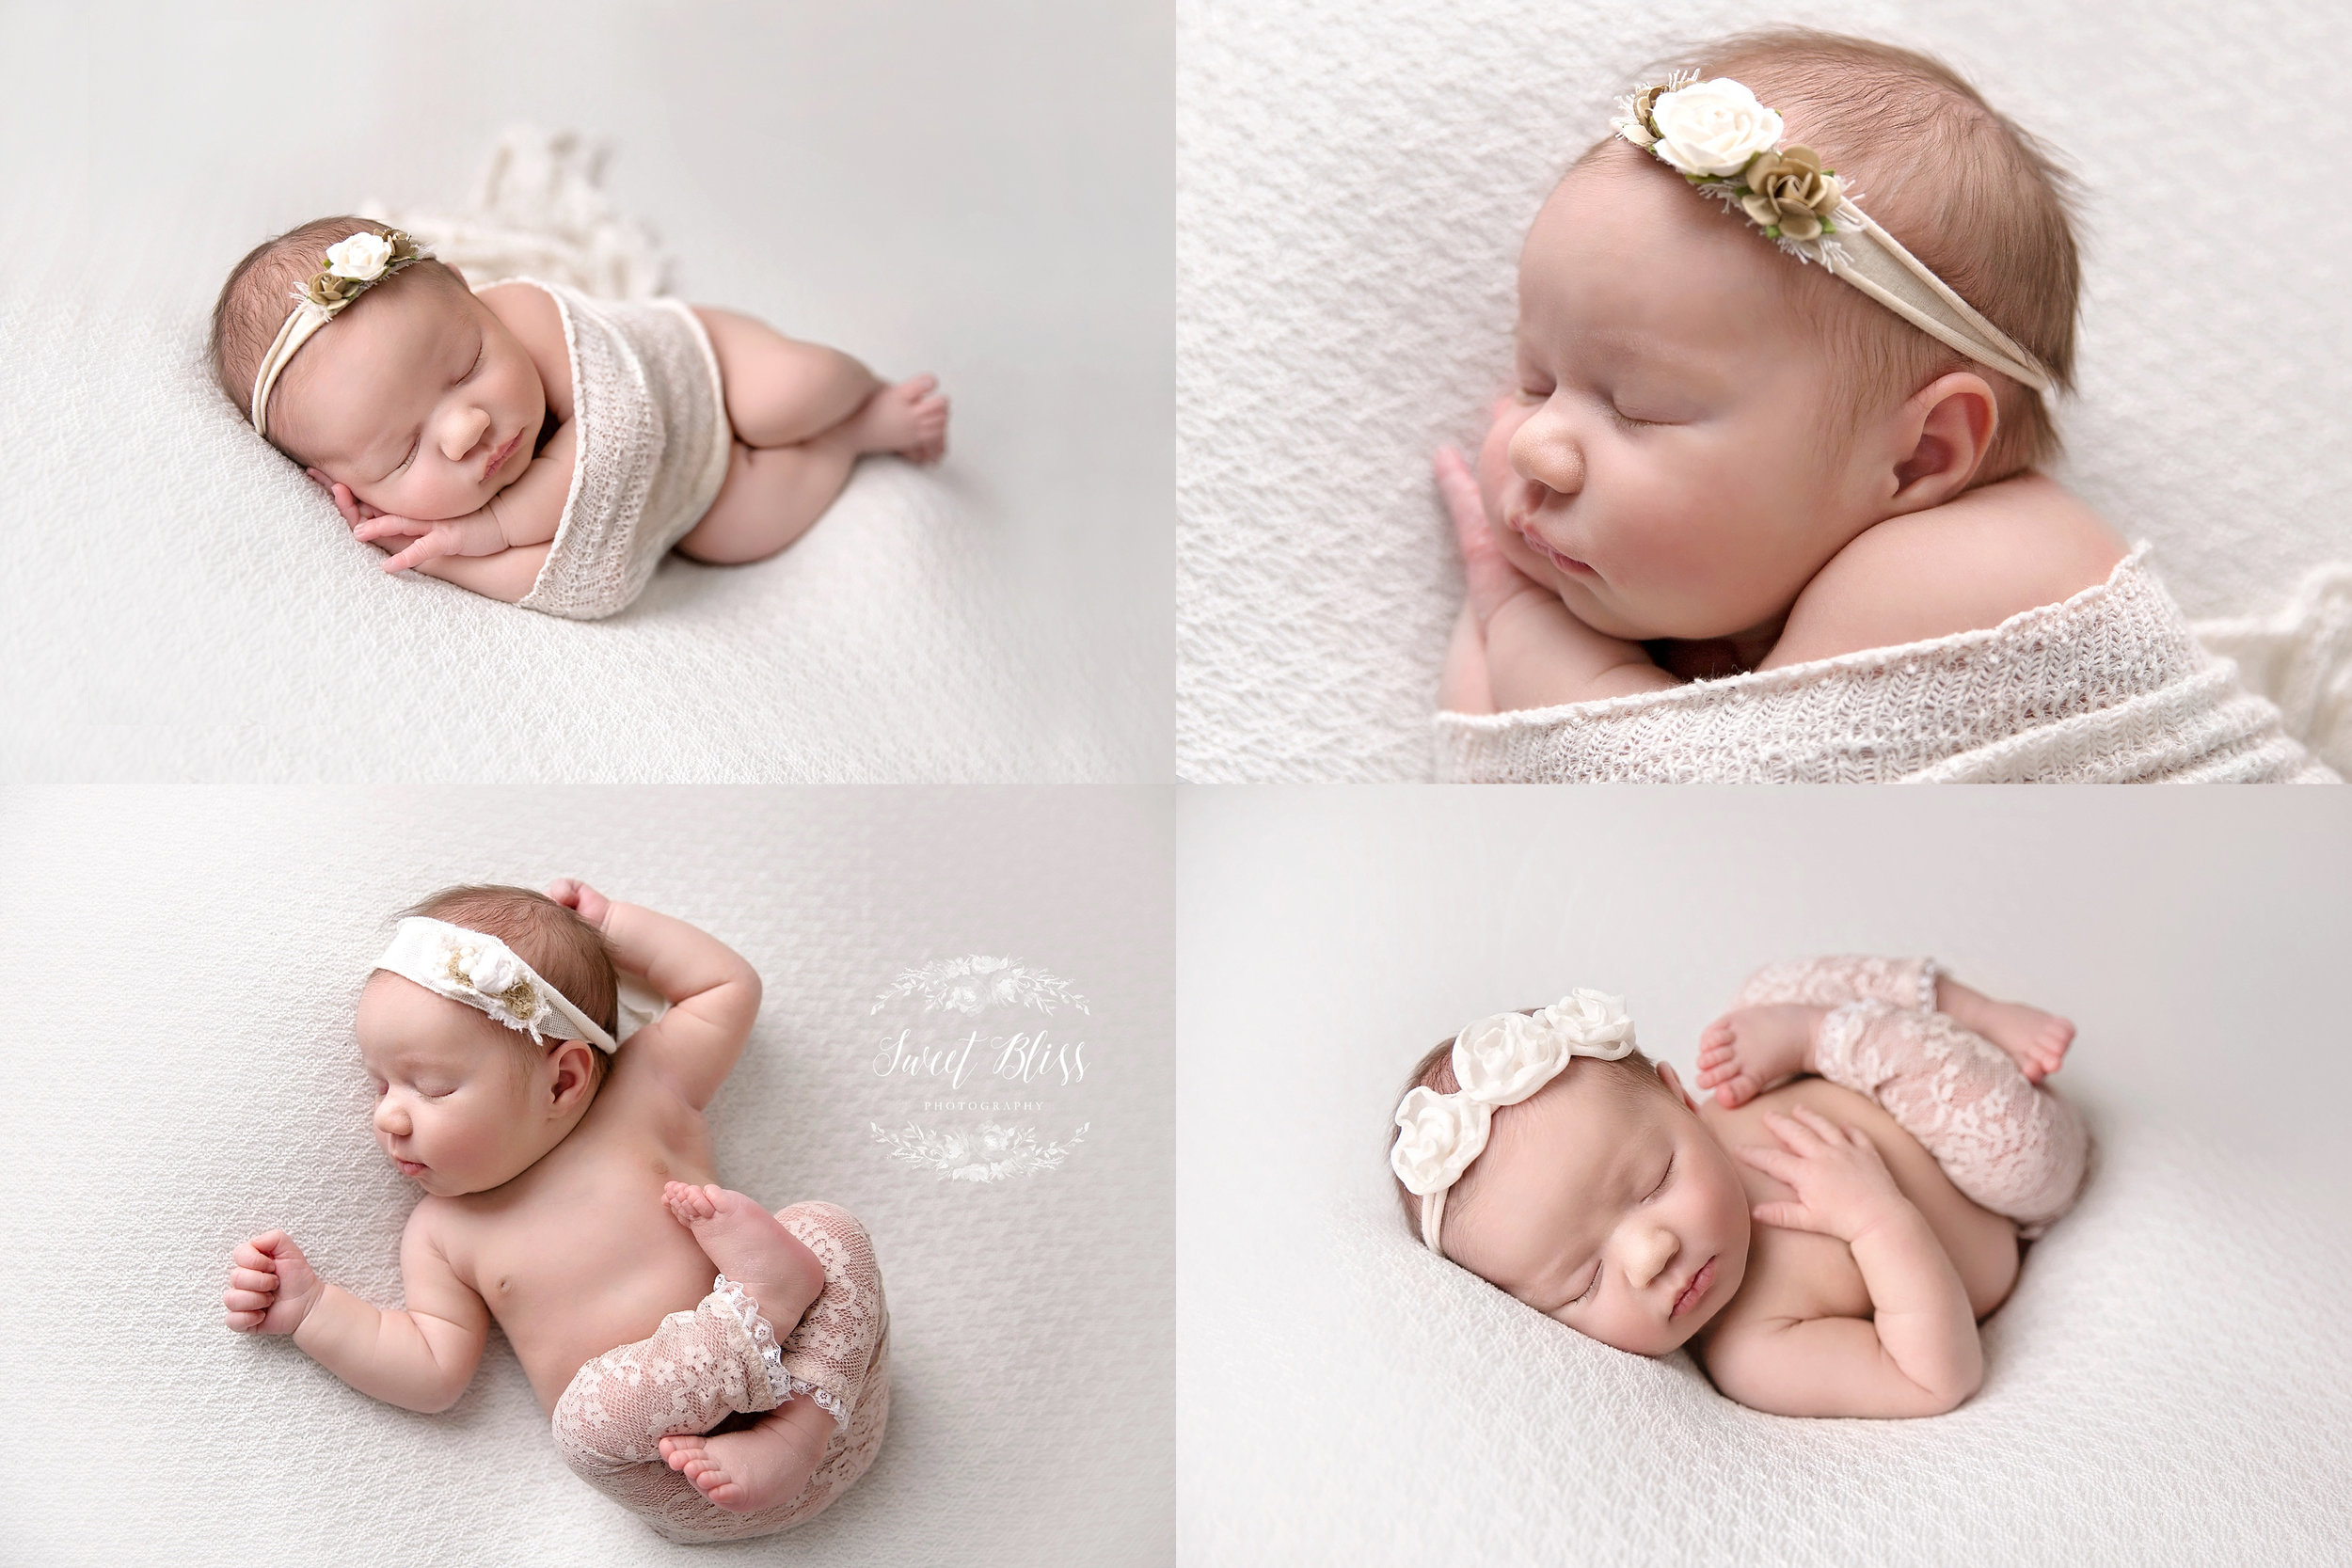 baltimorenewbornphotographer_harfordcountynewborn_sweetblissphotography_whiteblanket6.jpg